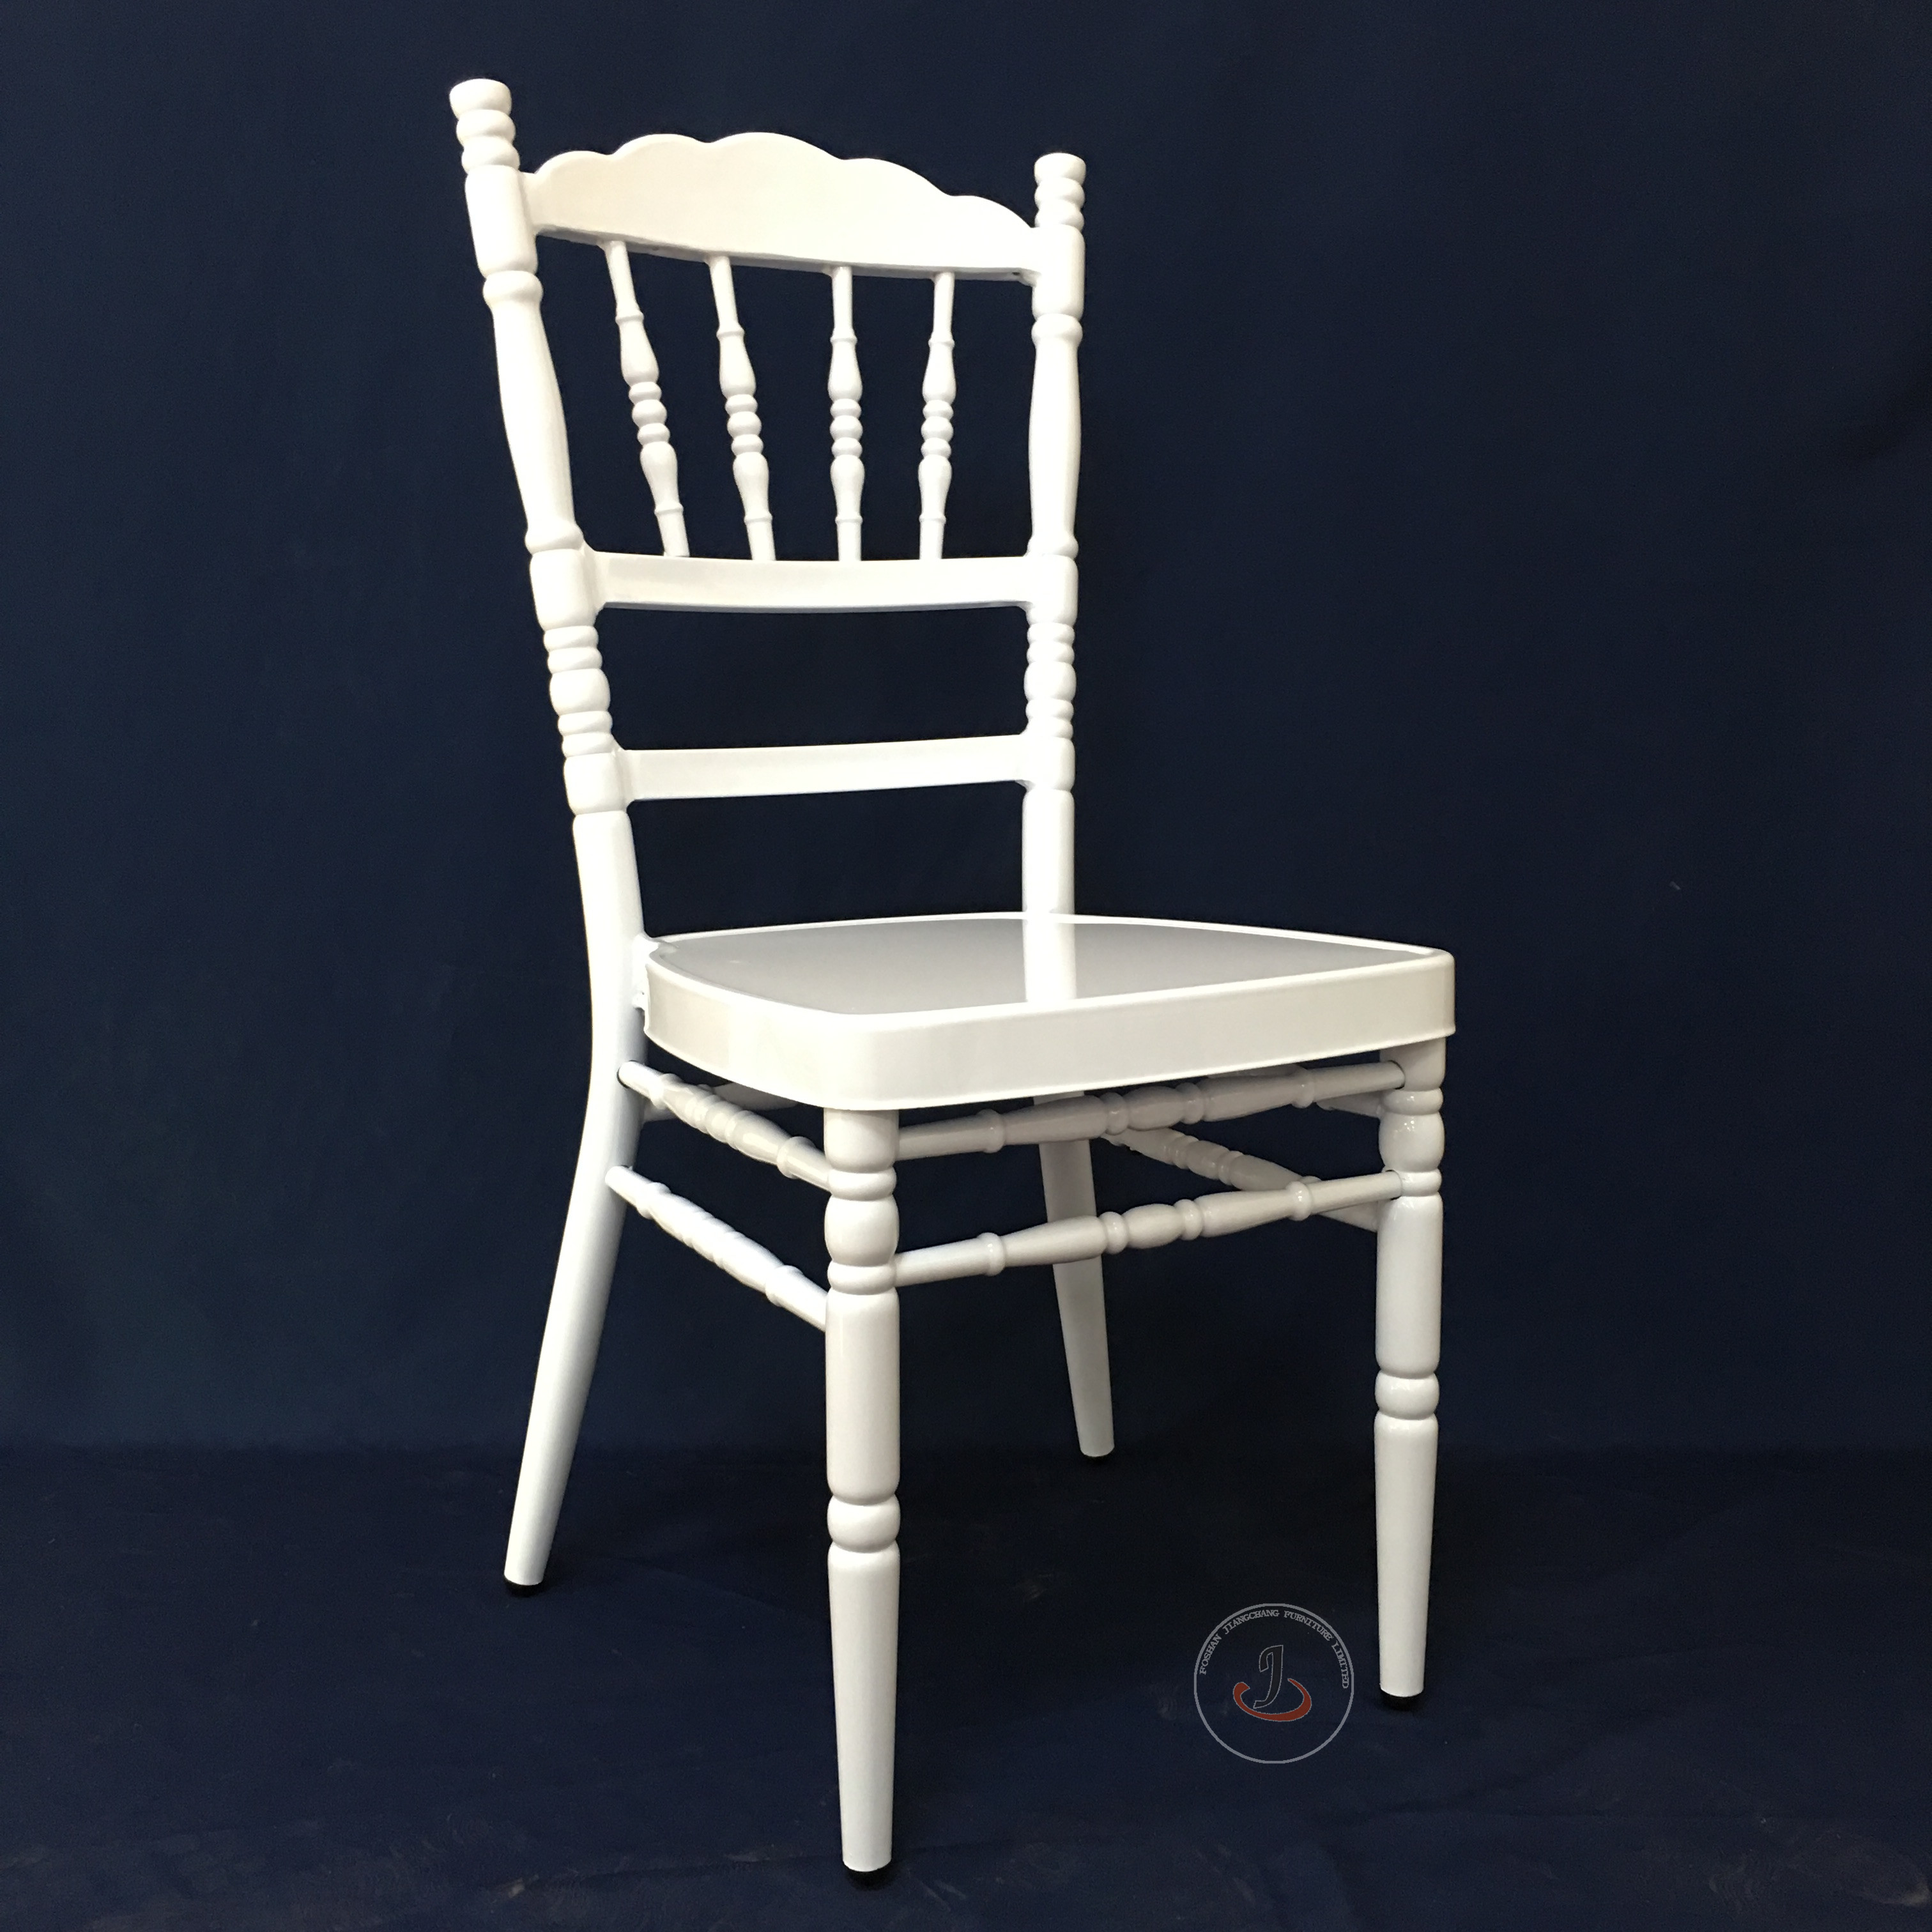 Castle Chair SF-ZJ06 Featured Image